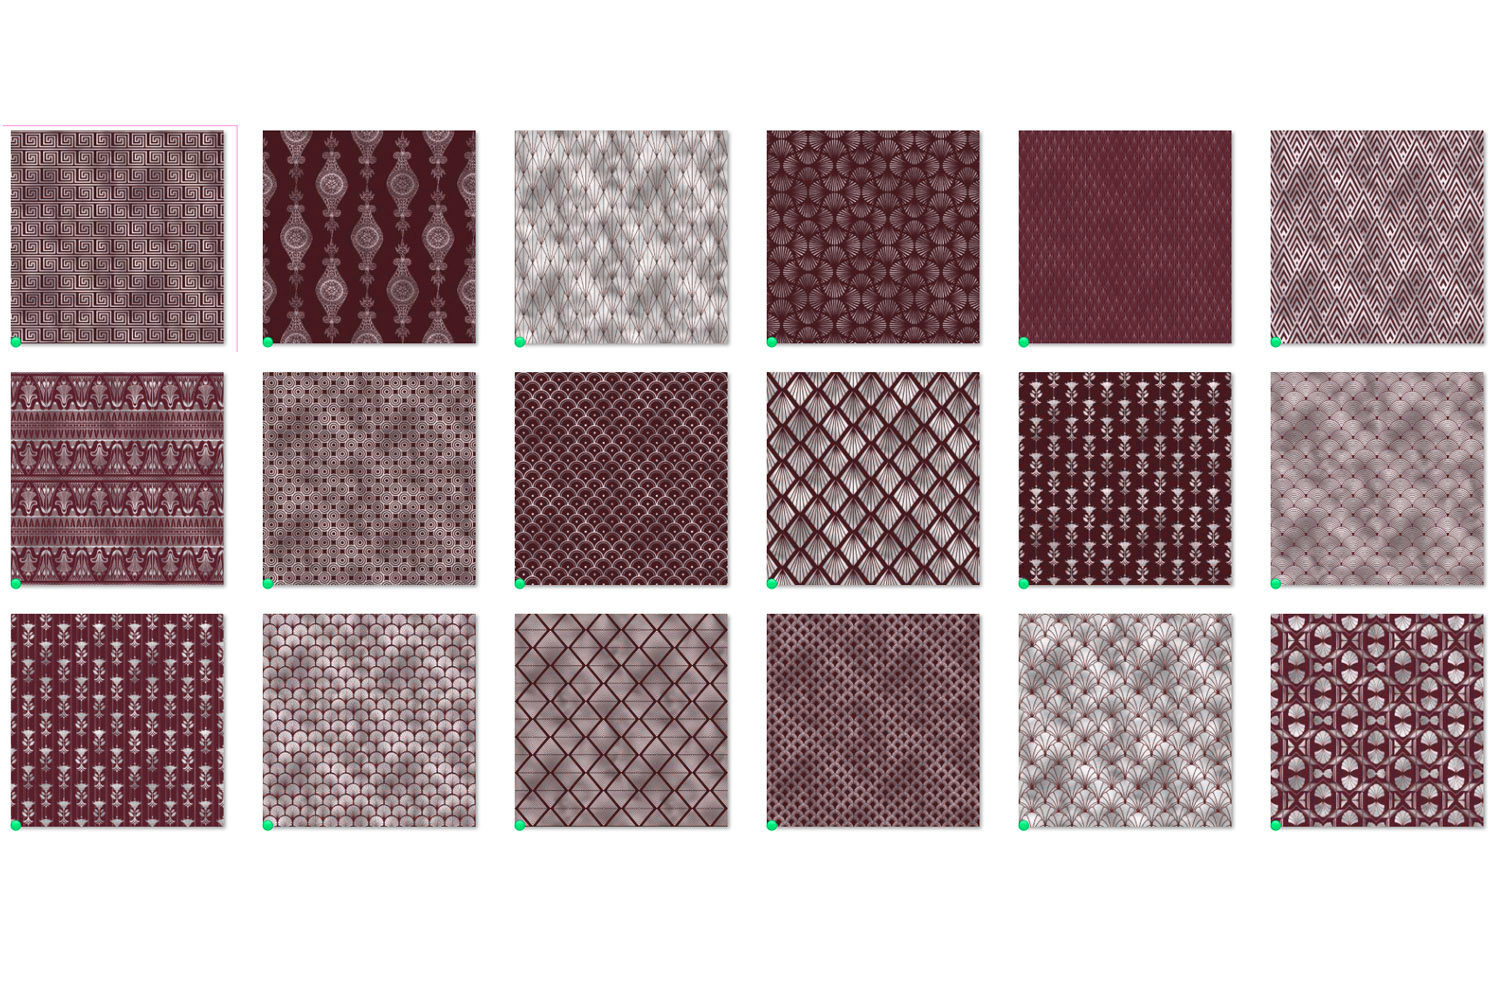 Maroon and Silver Art Deco Digital Paper example image 4